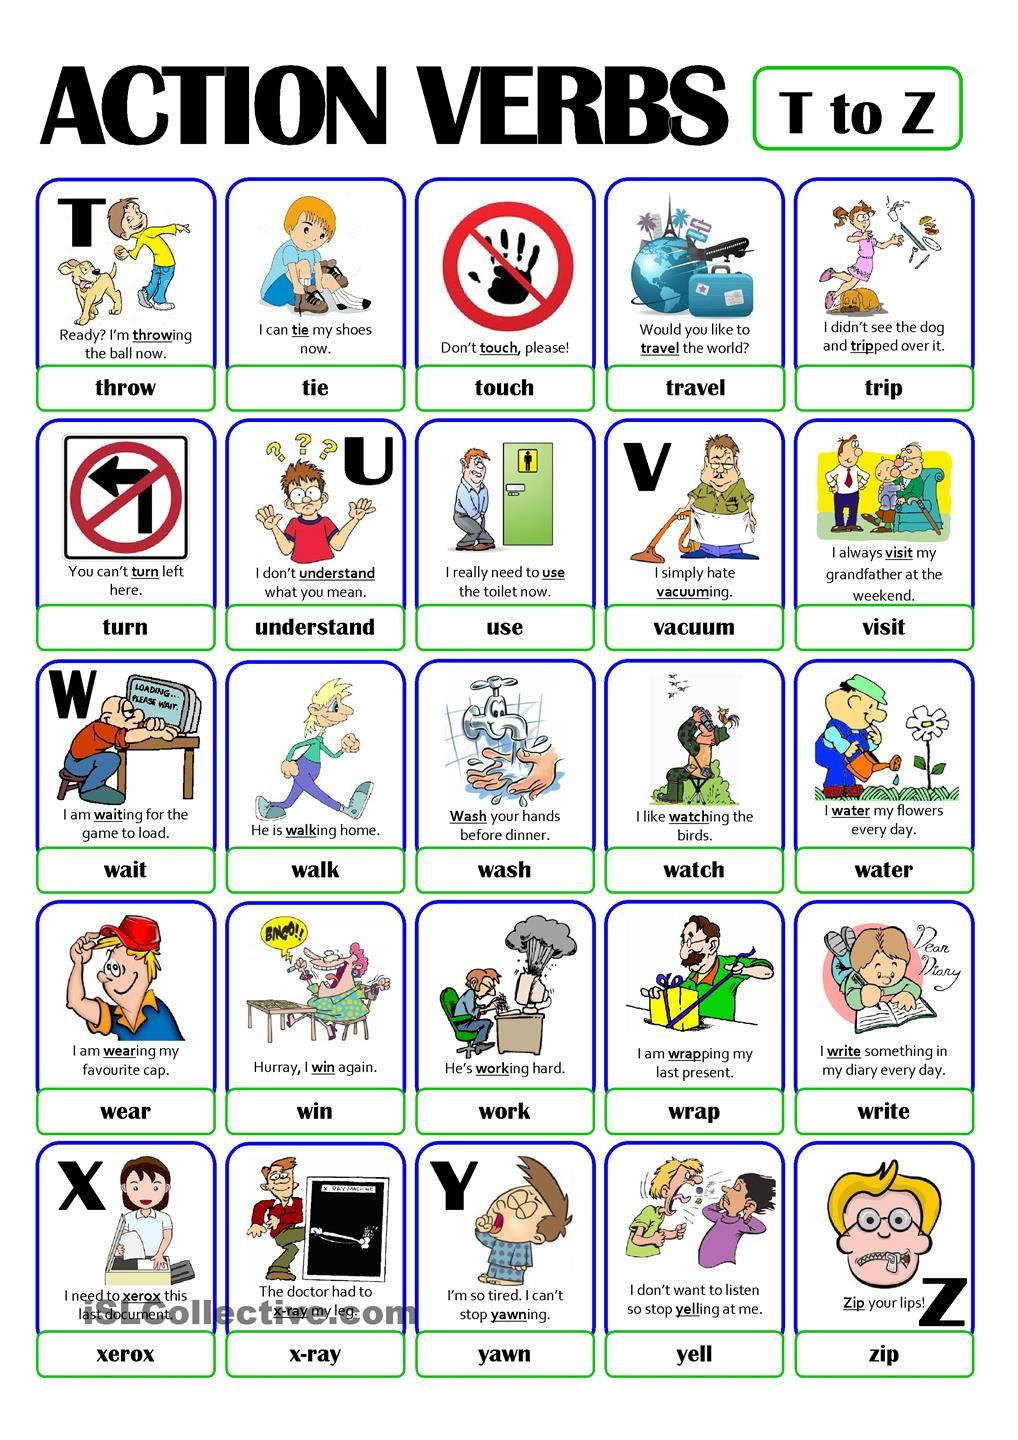 Pictionary  Action Verb Set (5)  From T To Z  Word Of. Administrative Assistant Job Skills Resume. Good Qualification For Resume. Qualification Summary Resume. Duties Of A Phlebotomist Resume. Example Of Job Description For Resume. Veterinary Resume Templates. How To Make An Online Resume. Resume High School Student